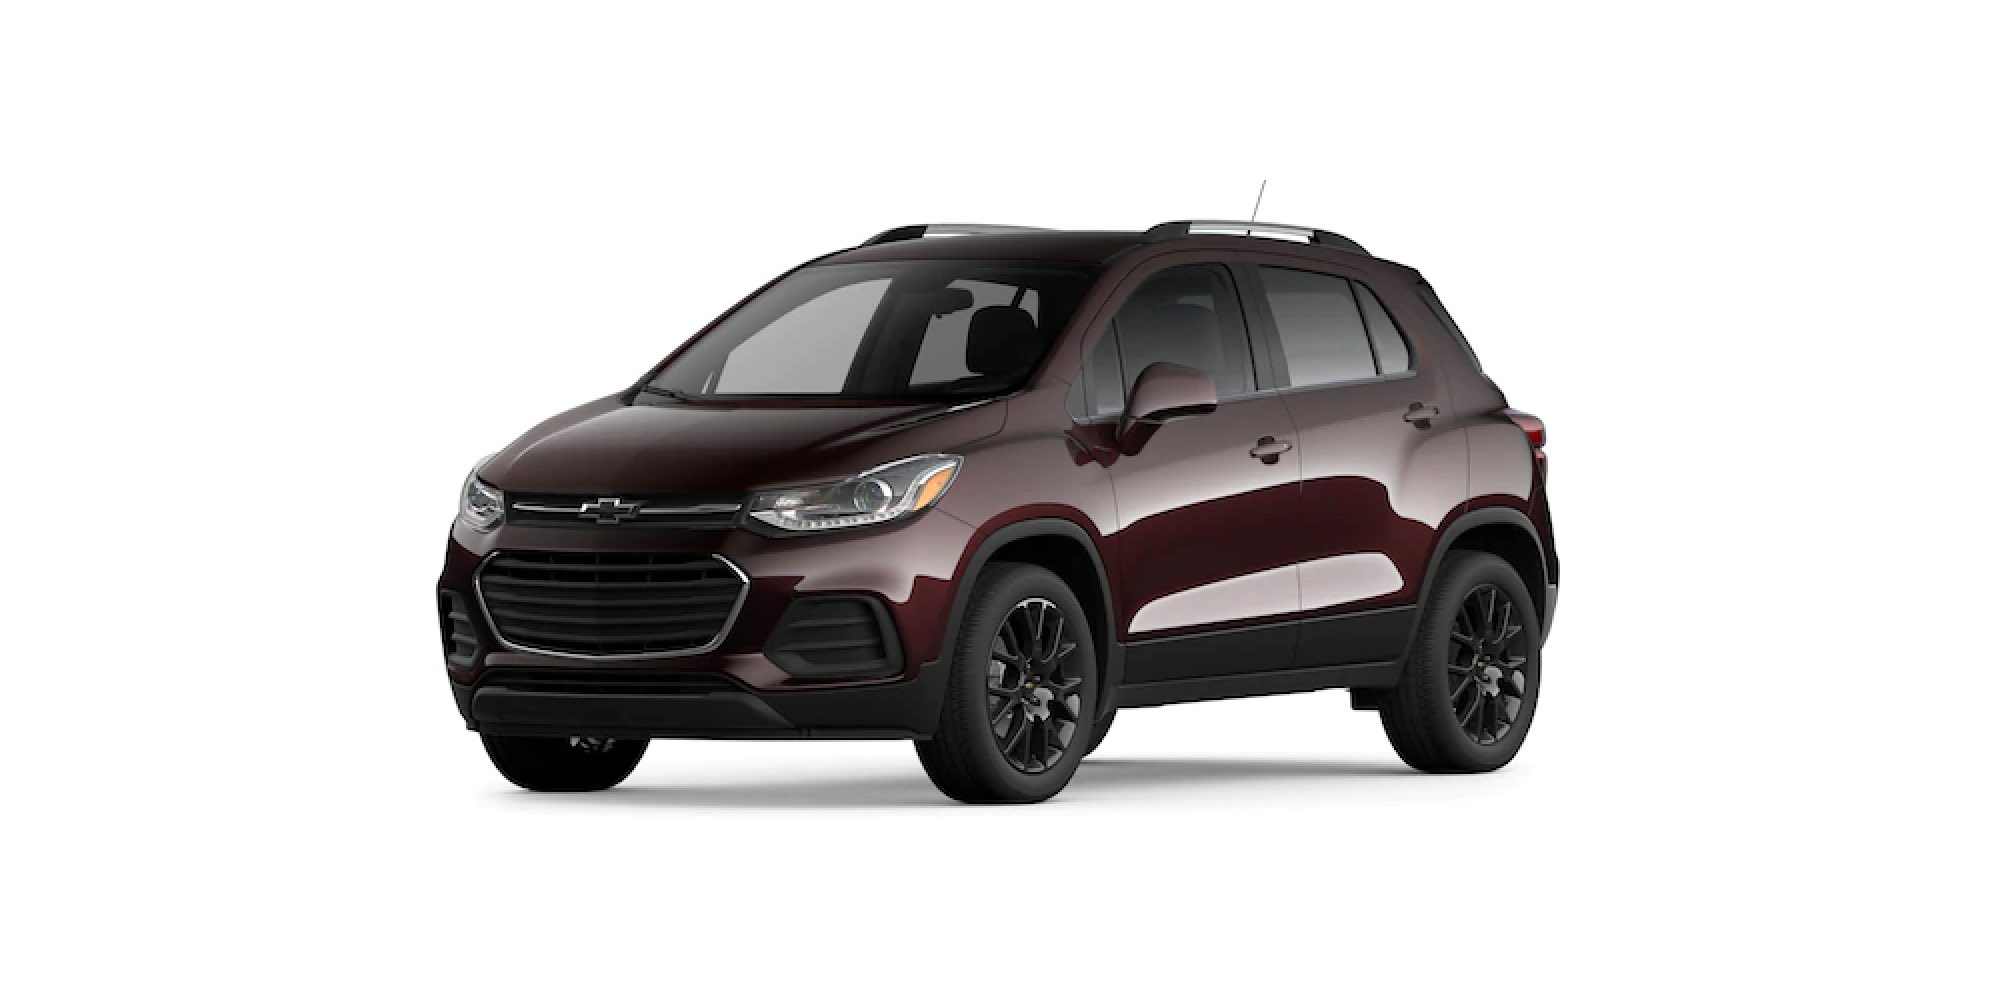 2021 Chevy Trax in Black Cherry Metallic